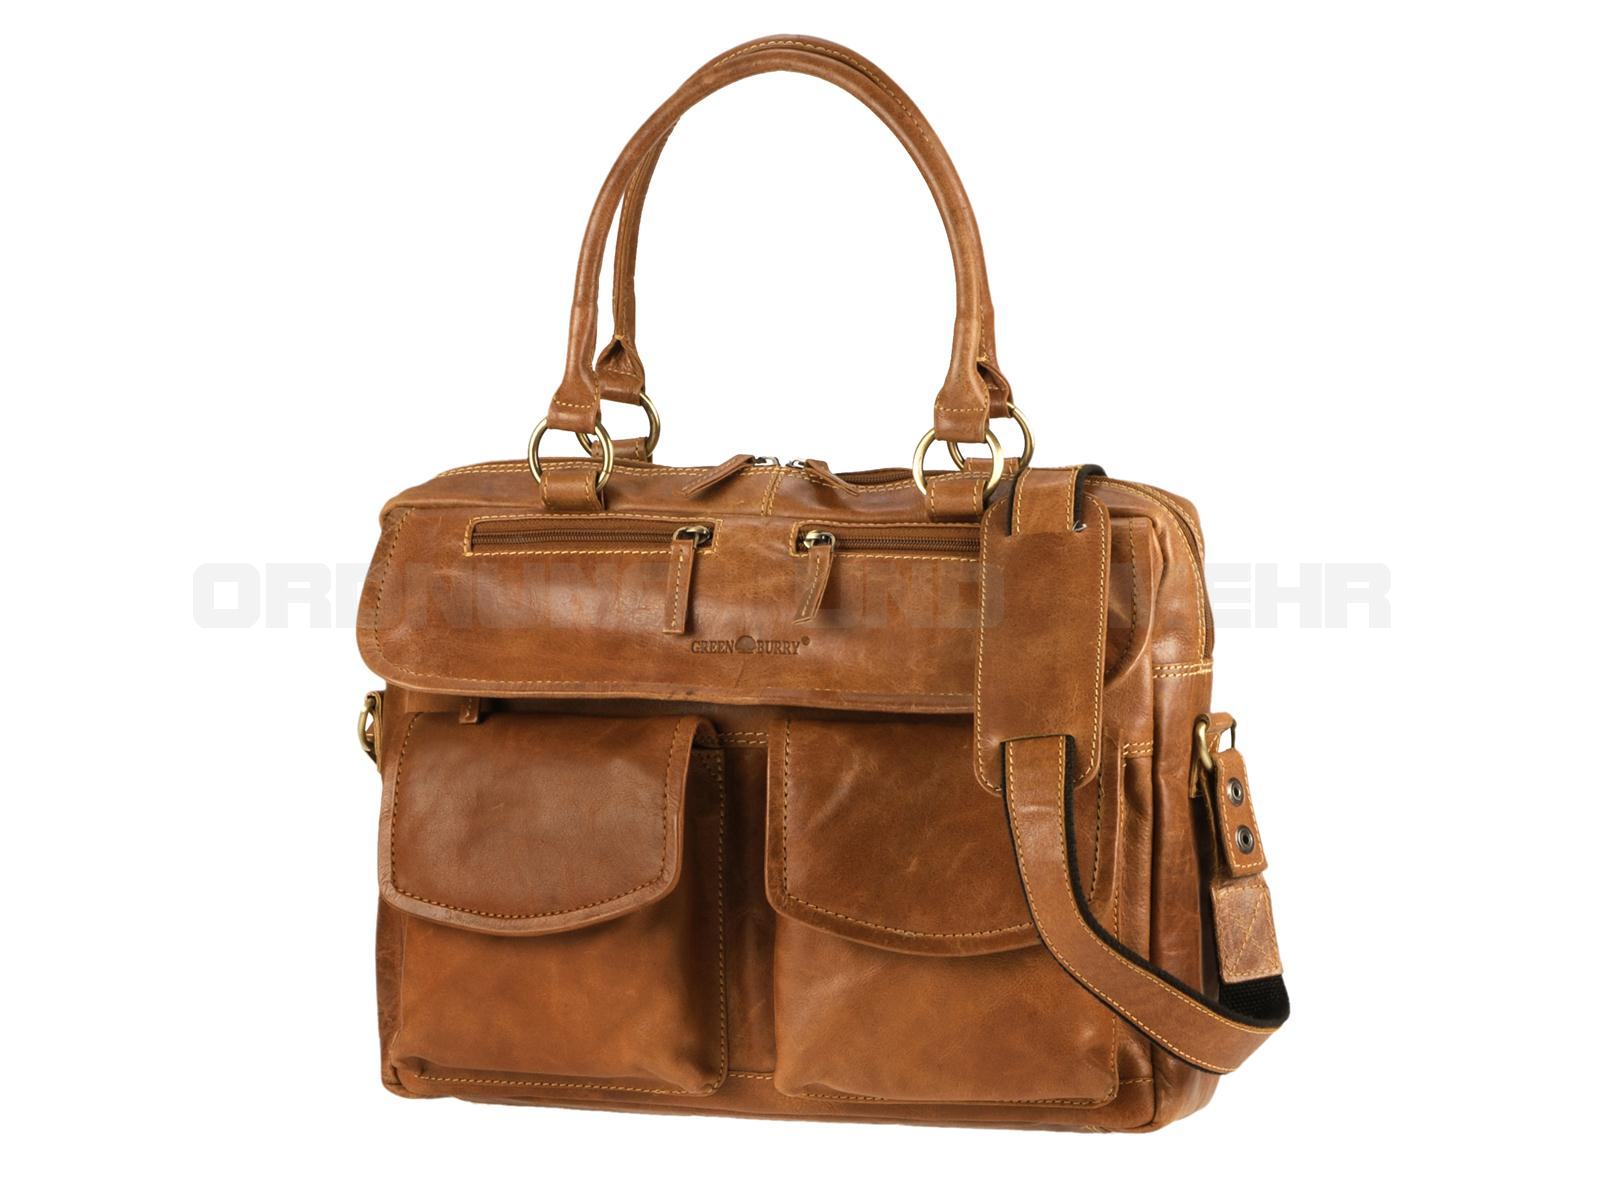 Greenburry Damen Business Ledertasche 564-24 Expedition